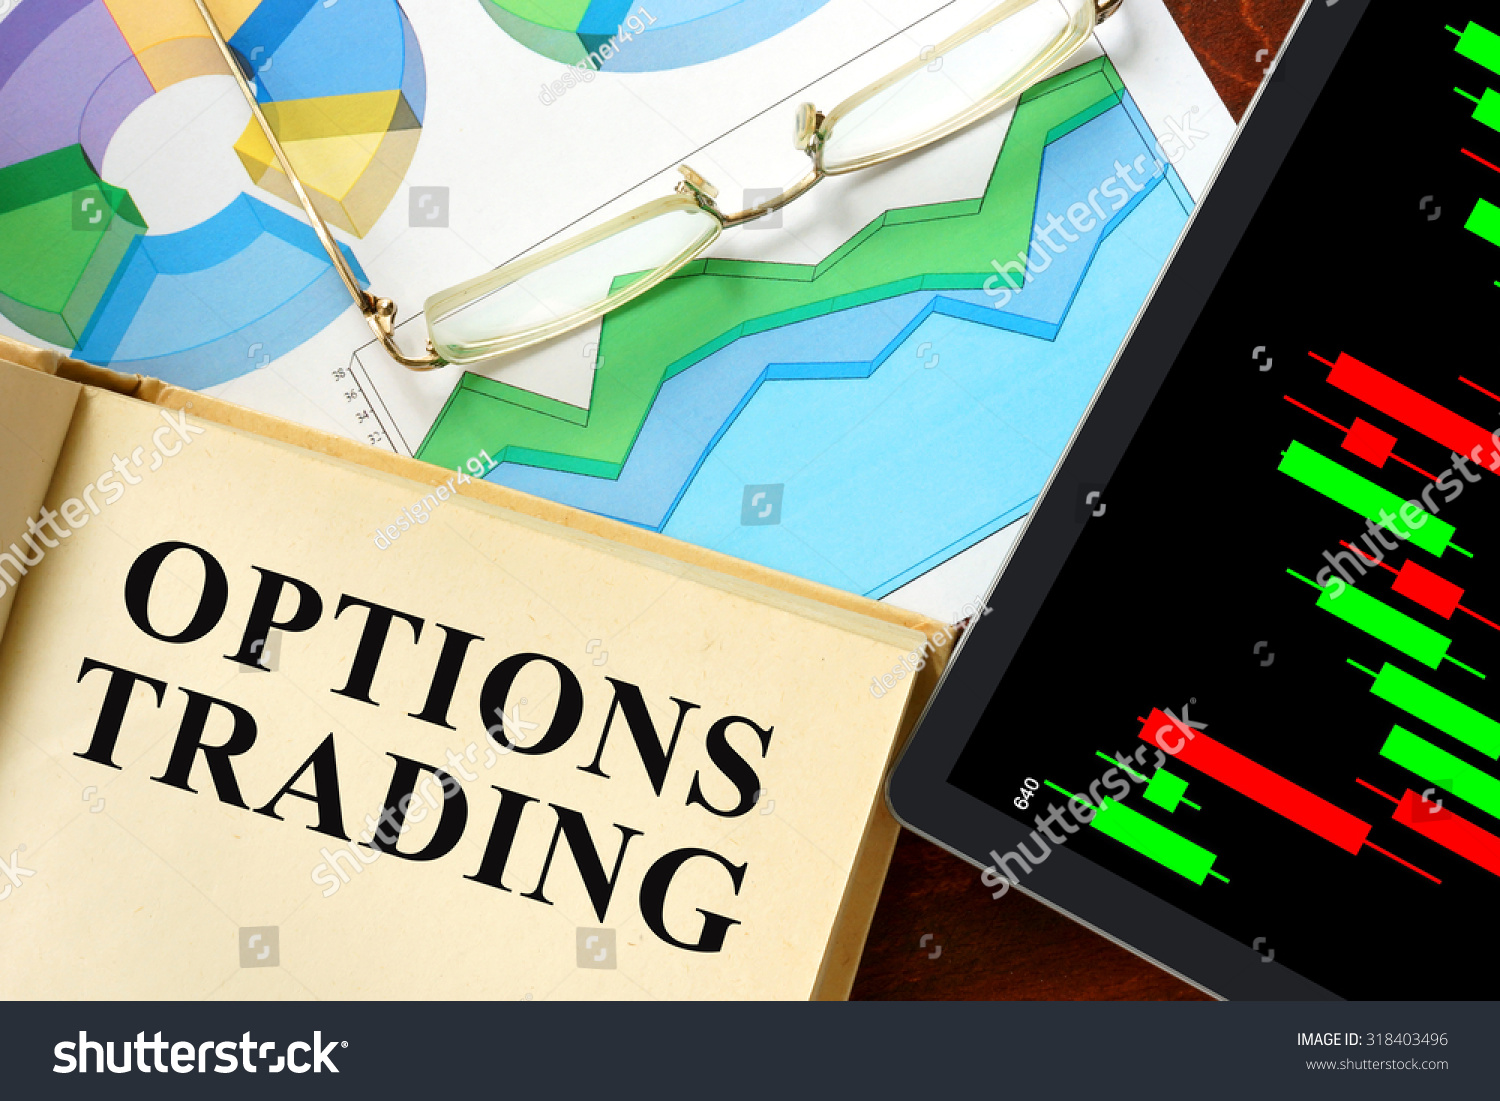 Trading stock options as a business